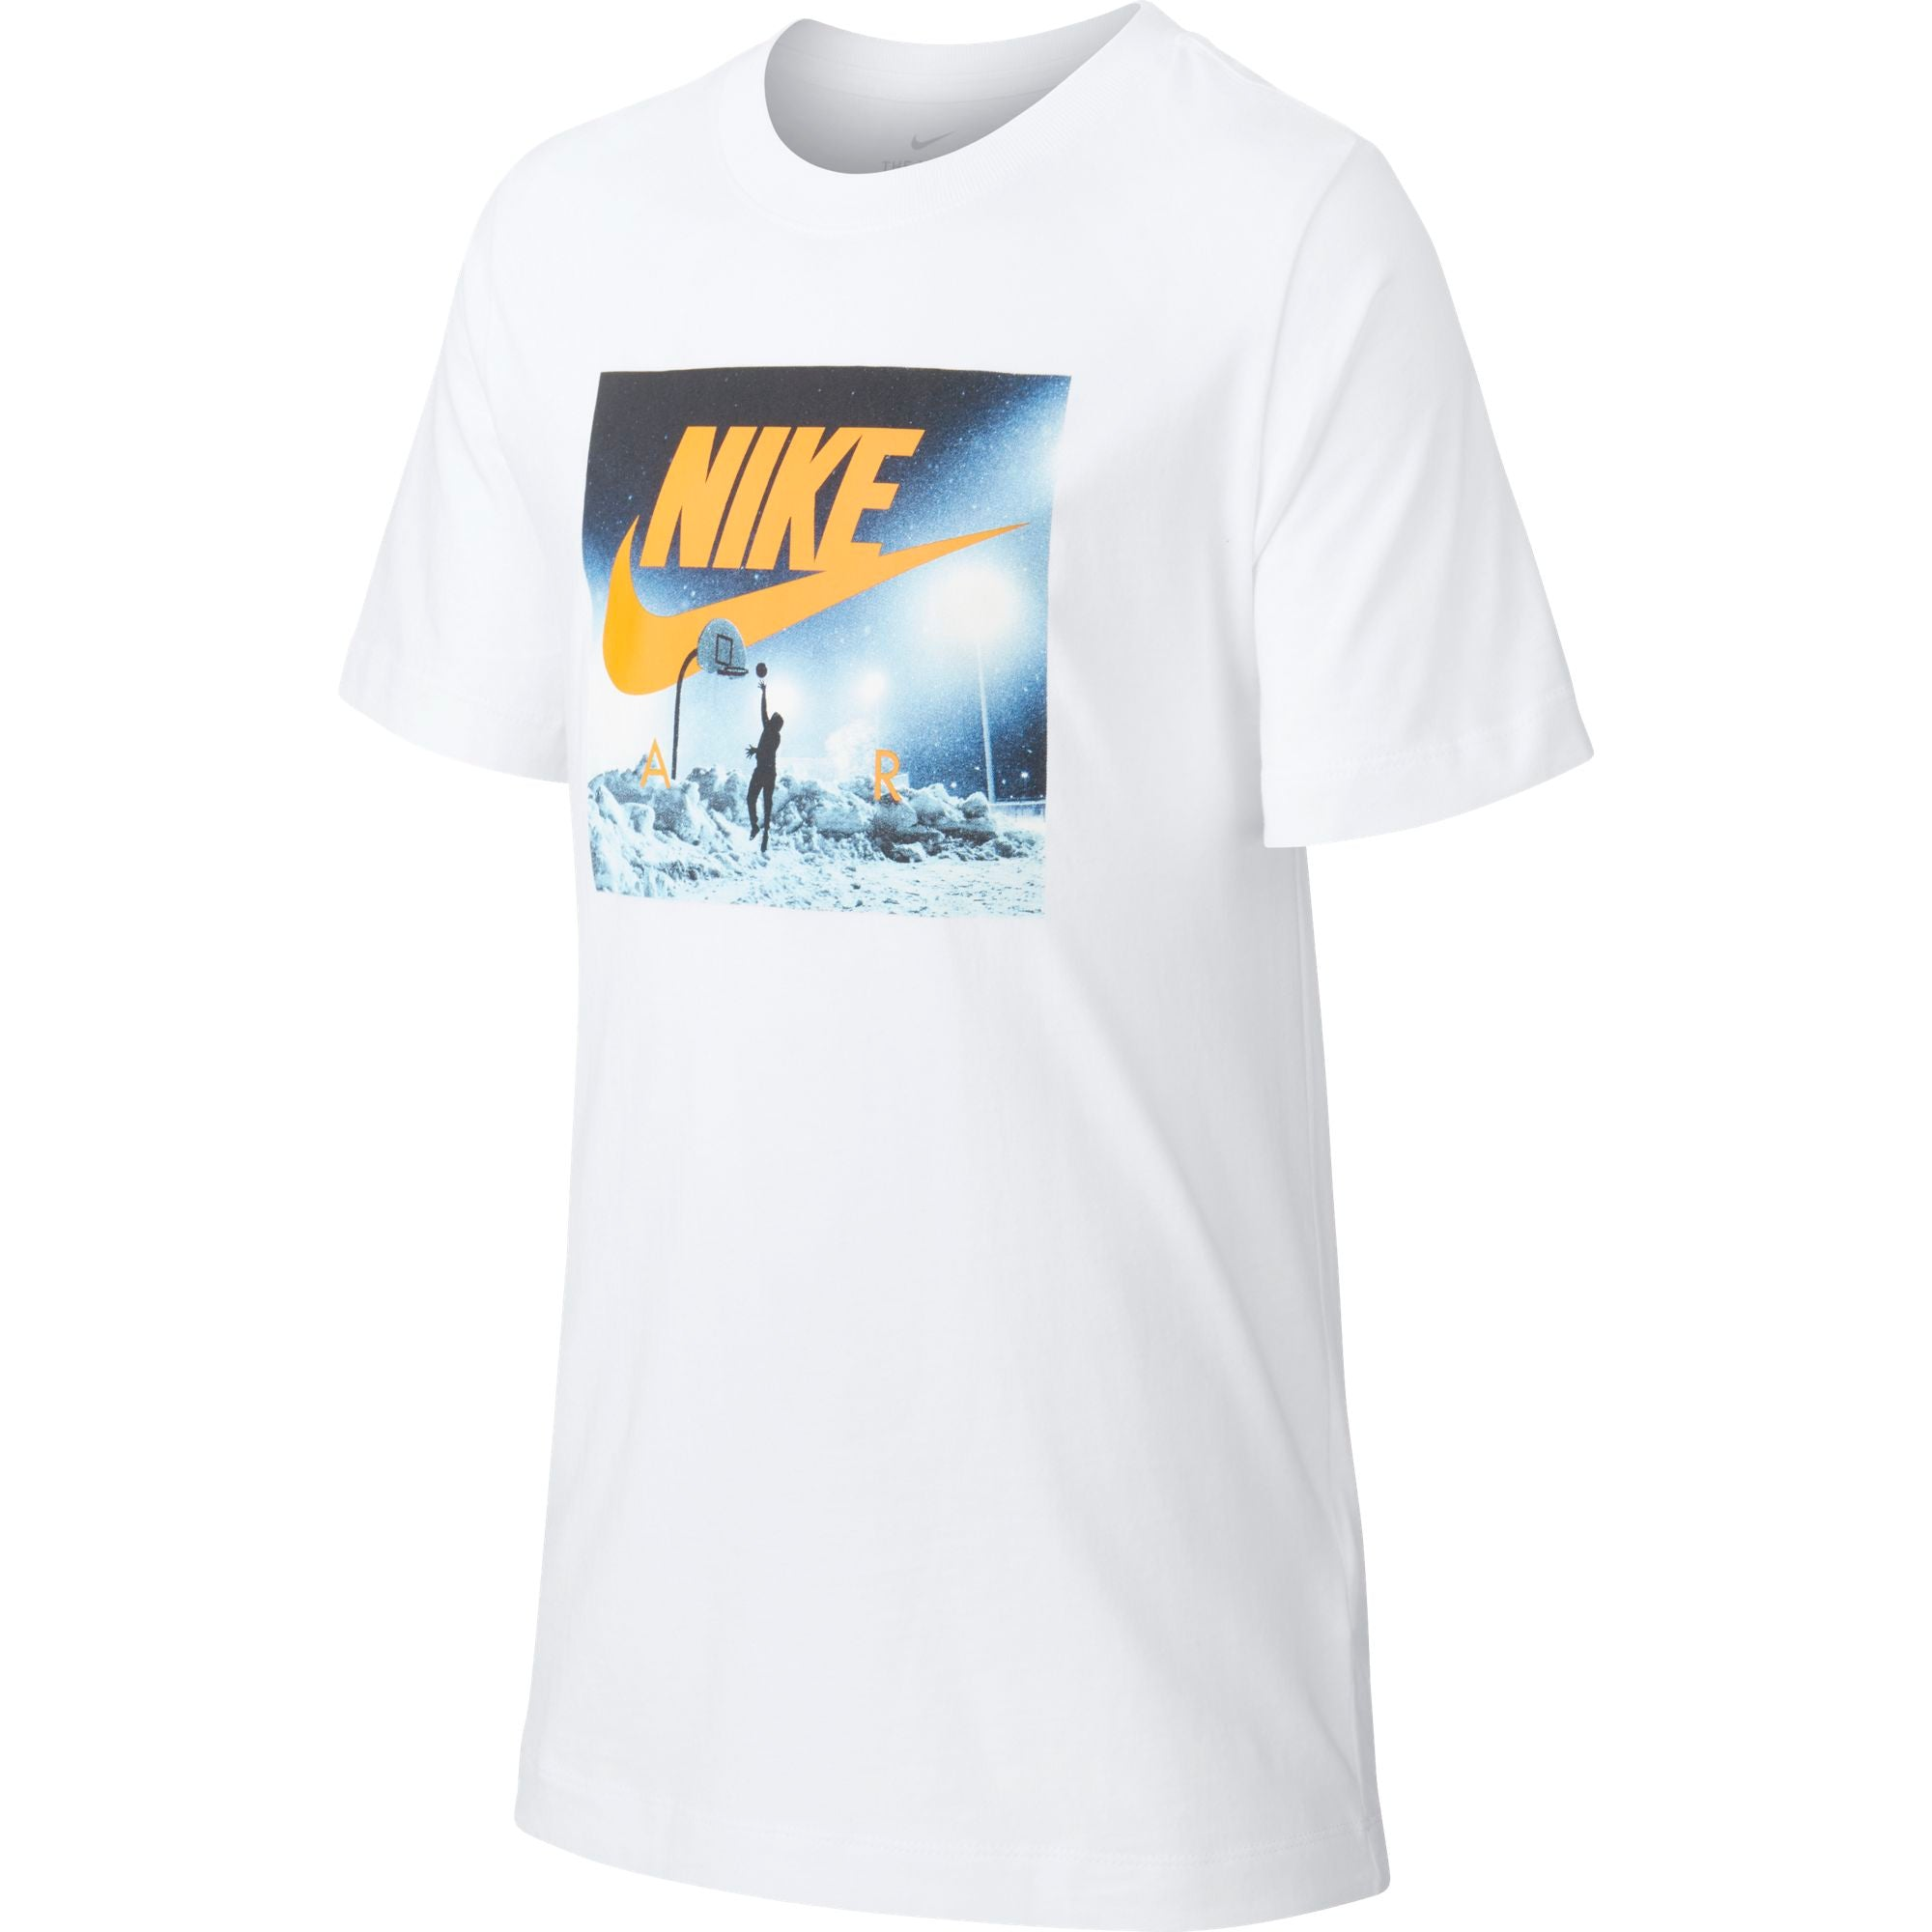 Nike Kids Ready To Play Tee - NK-CK5771-100